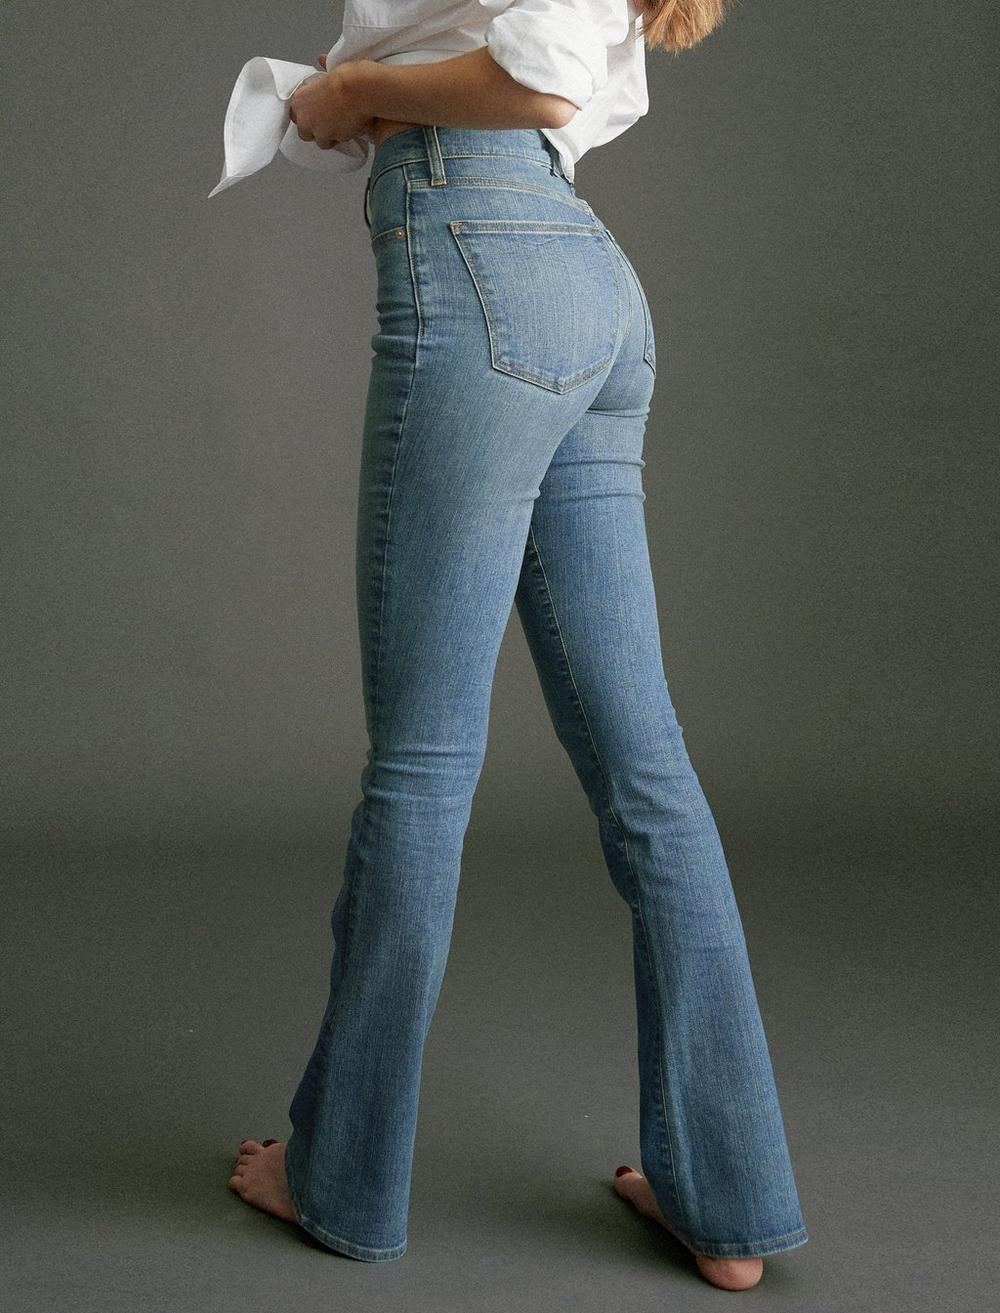 HIGH RISE BIANCA BOOT JEAN, image 2